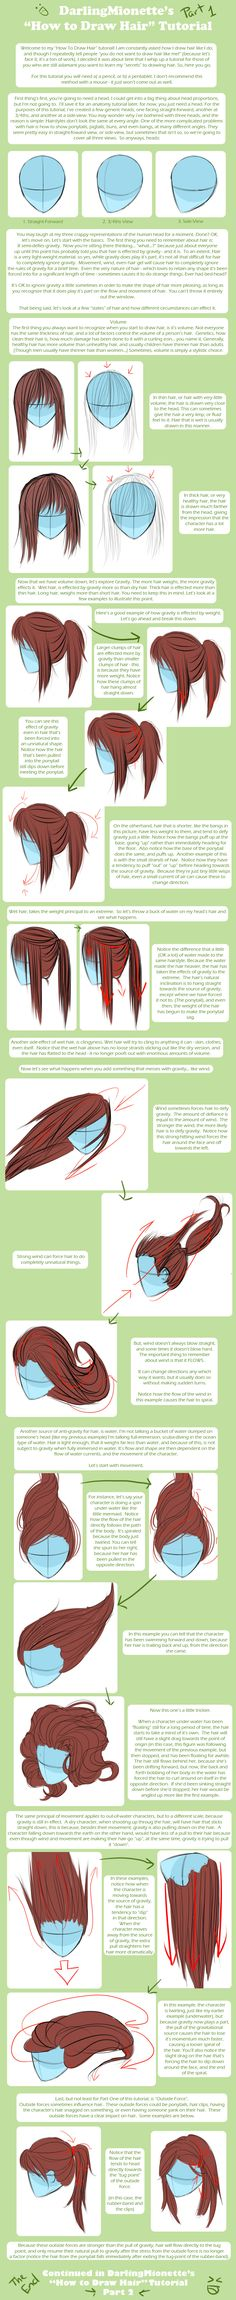 Tutorial - How To Draw Hair 1 by =DarlingMionette